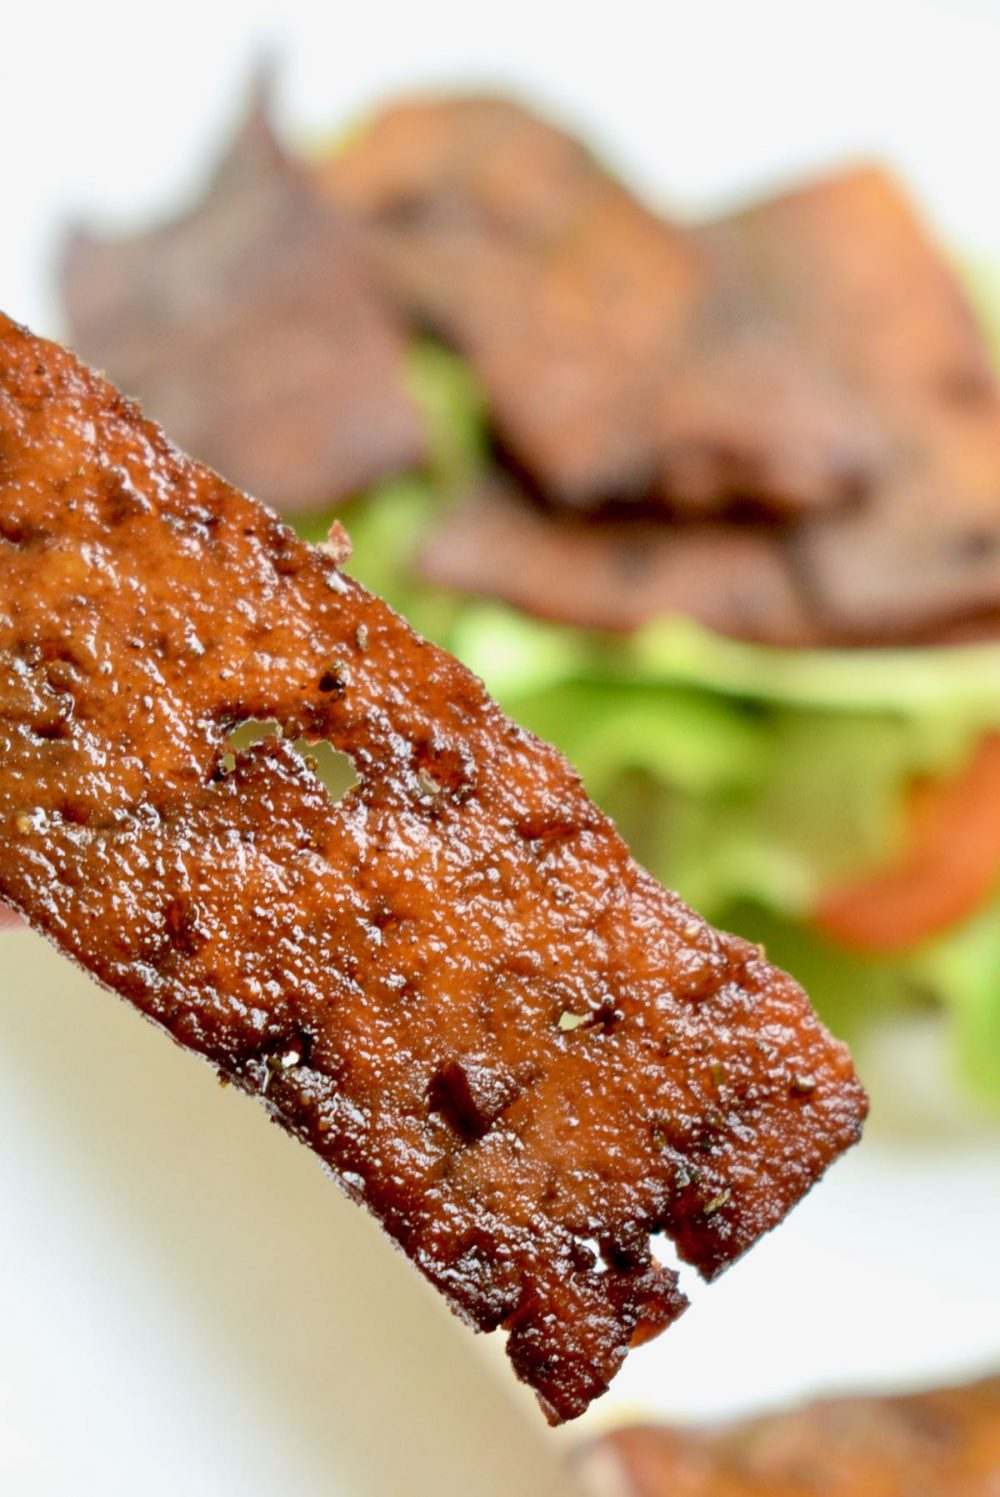 A slice of fried tofu shows off its texure close-up. It is shiny with oil and juicy with marinade, crisp and dark in some spots and thin and porous in others.